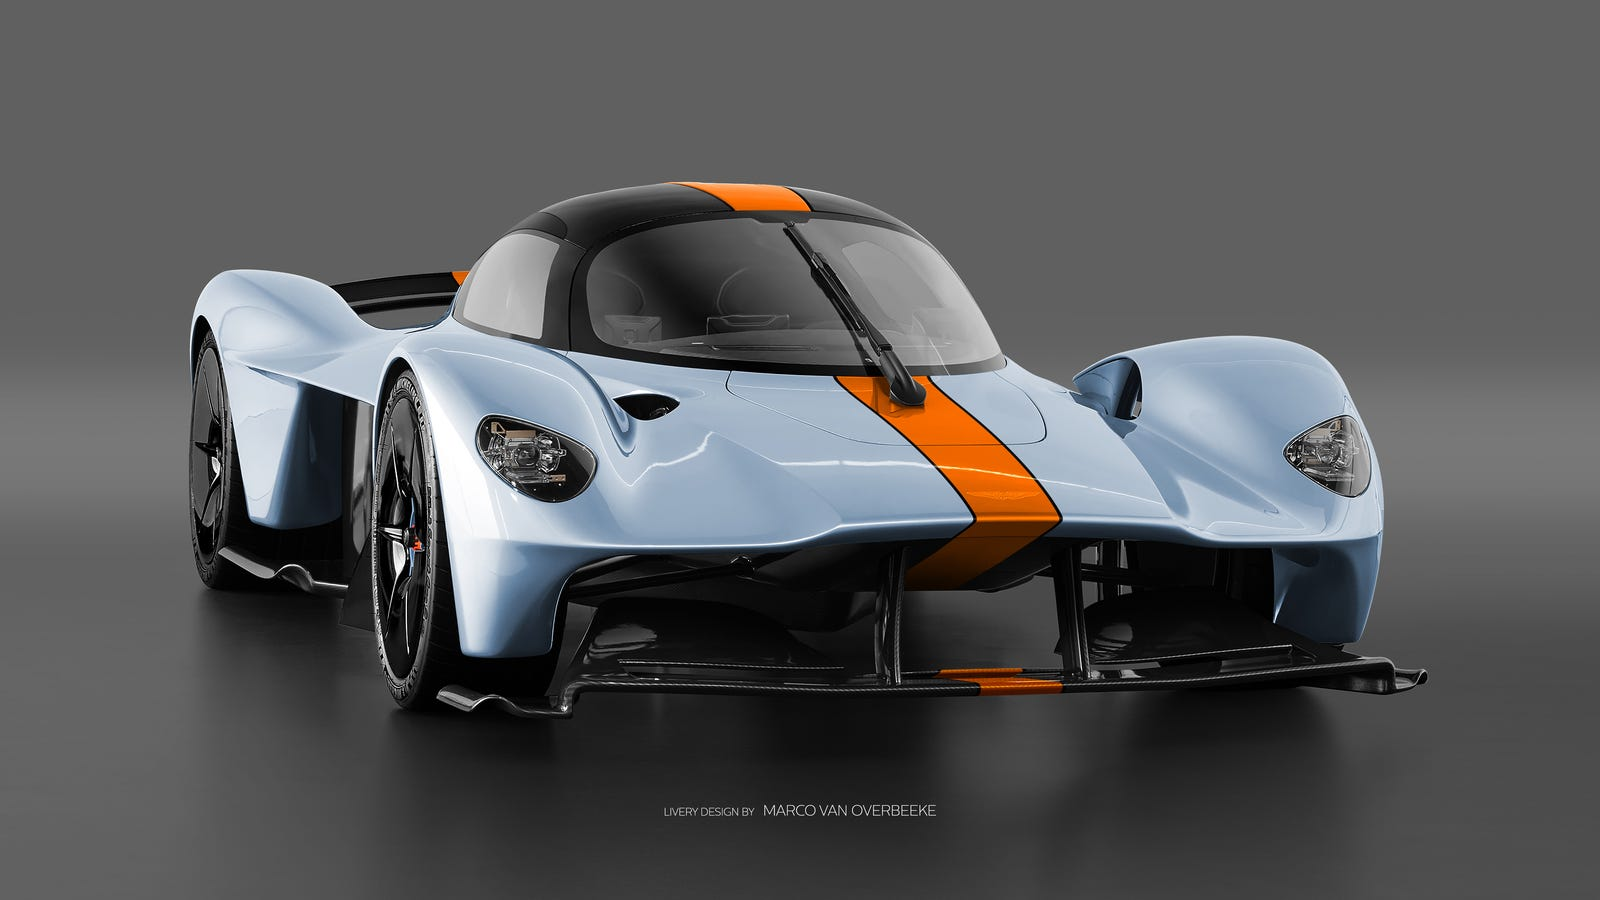 The Aston Martin Valkyrie Looks Especially Good In Classic